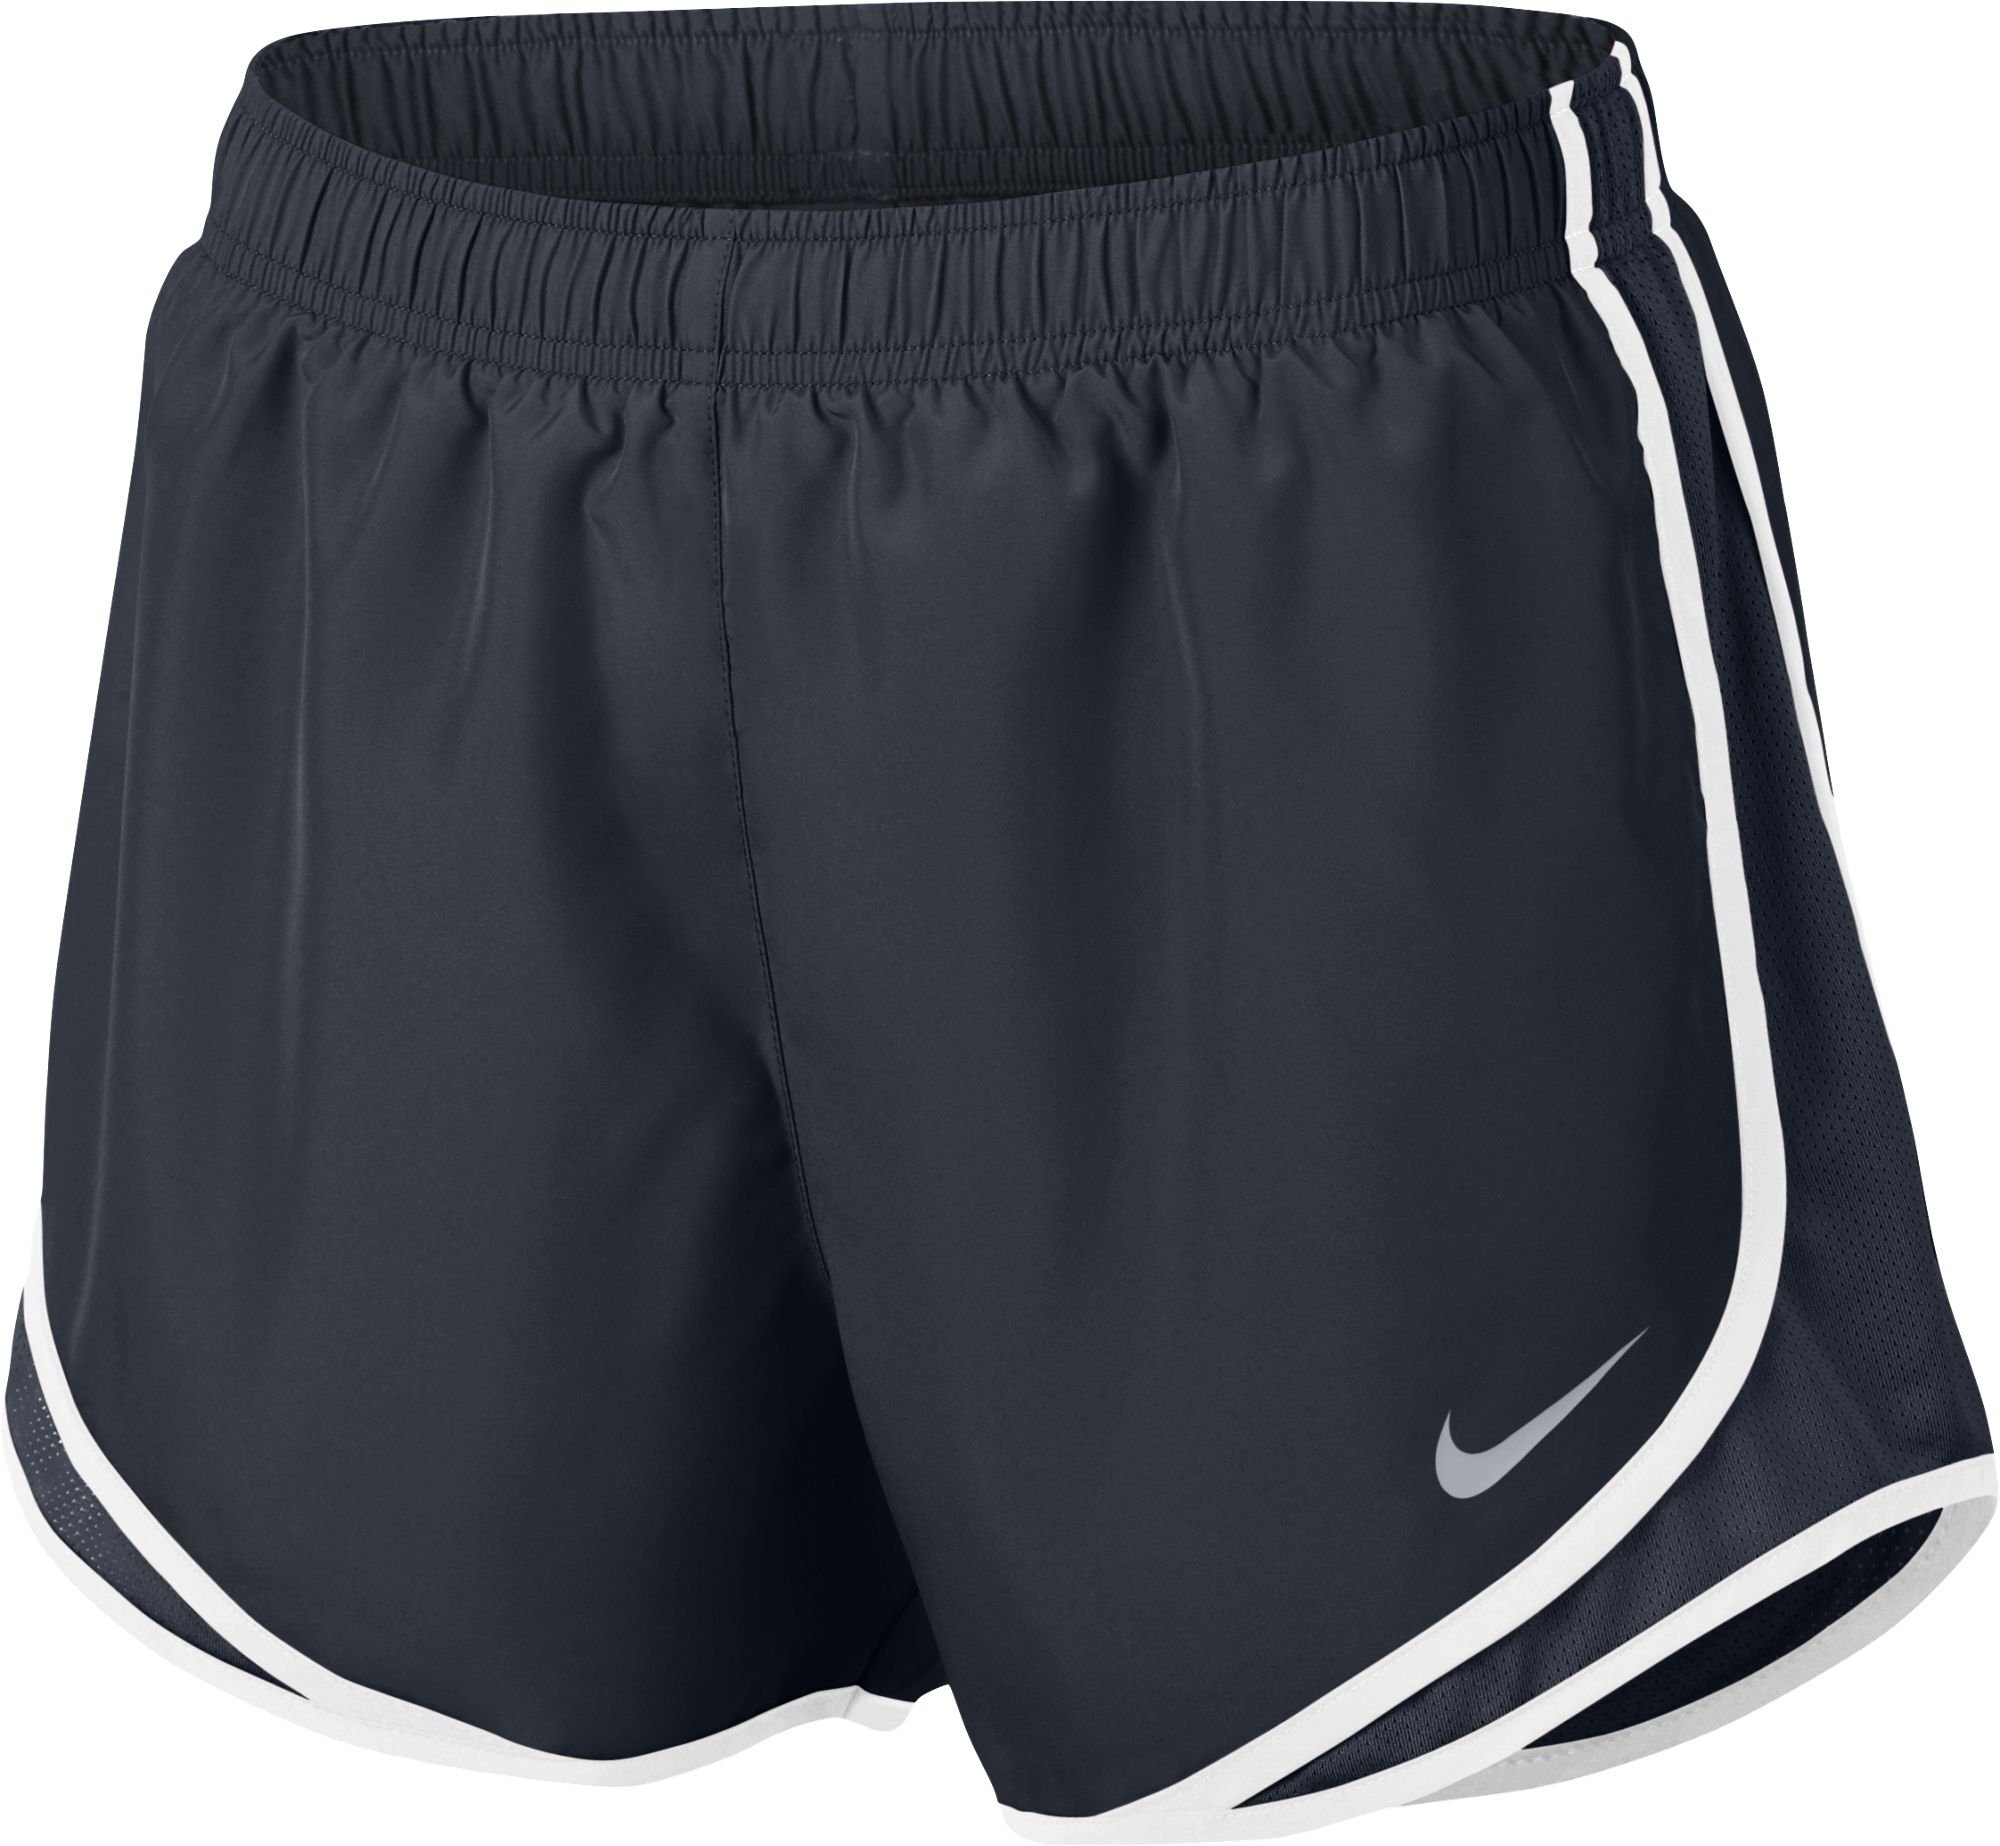 7d53f7dc8e8 Nike Women's Dry Tempo Running Short Dark Obsidian/Wolf Grey Size XX-Large